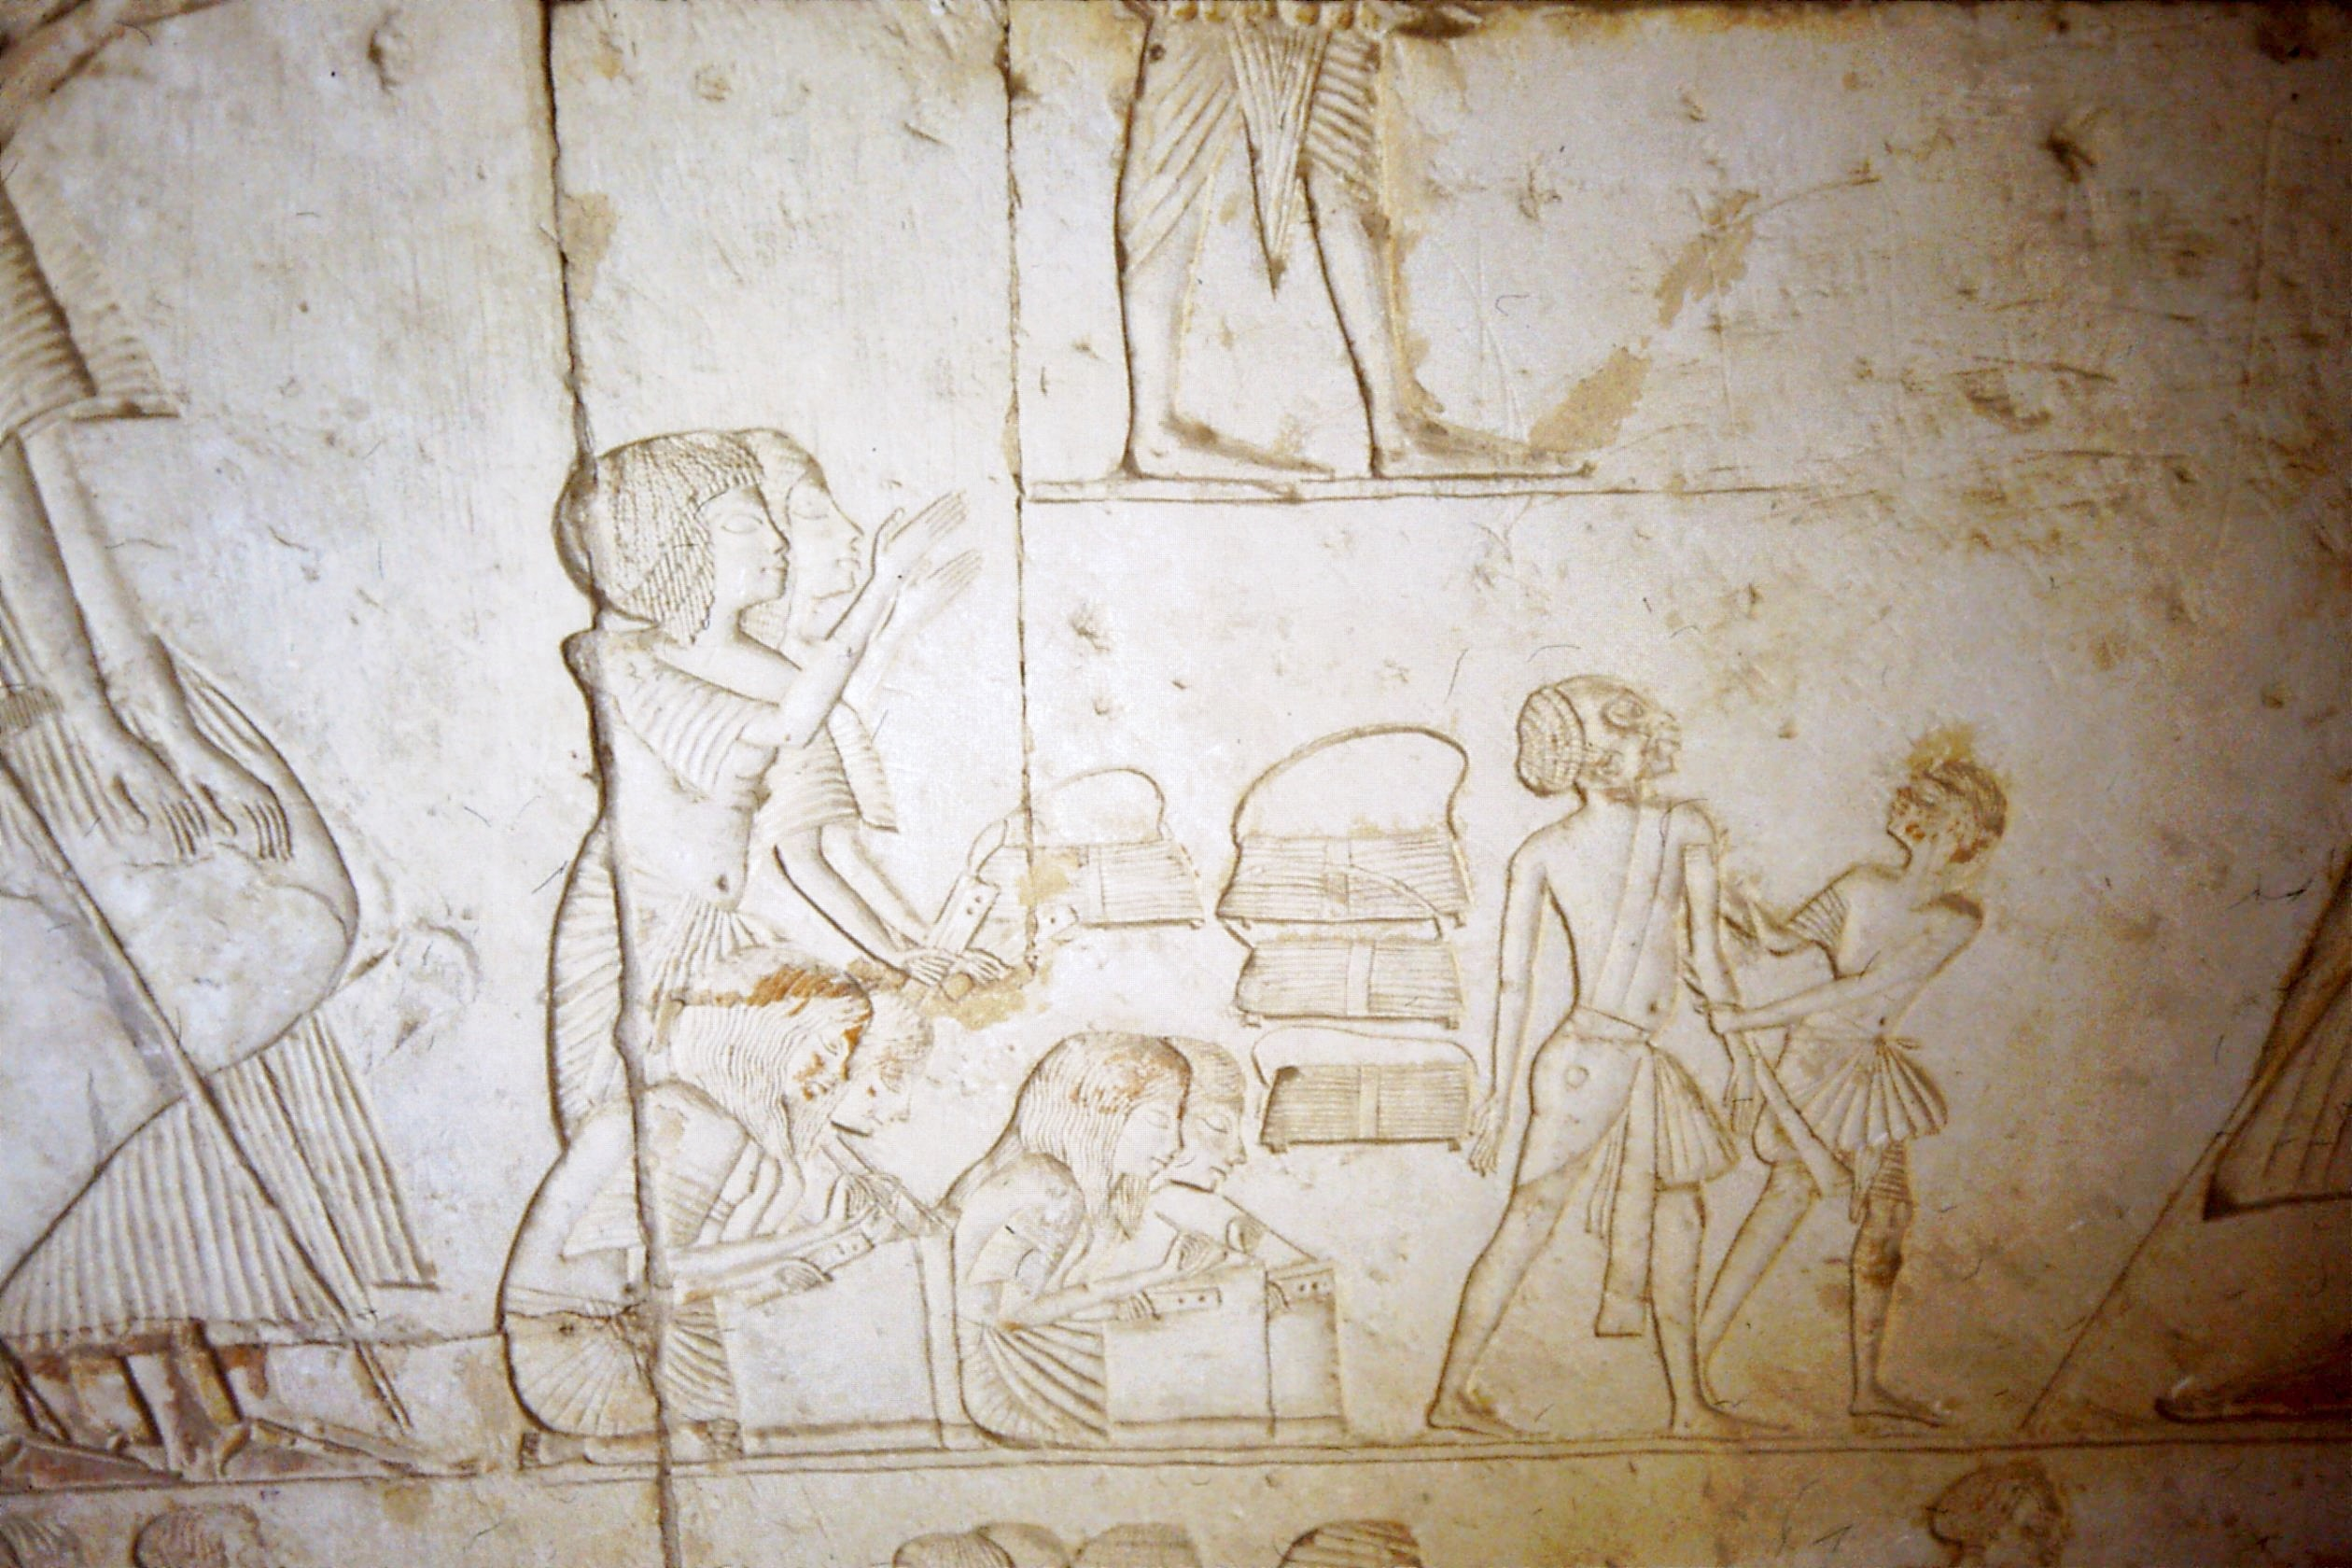 Scribes in the tomb of Horemheb at Saqqara.